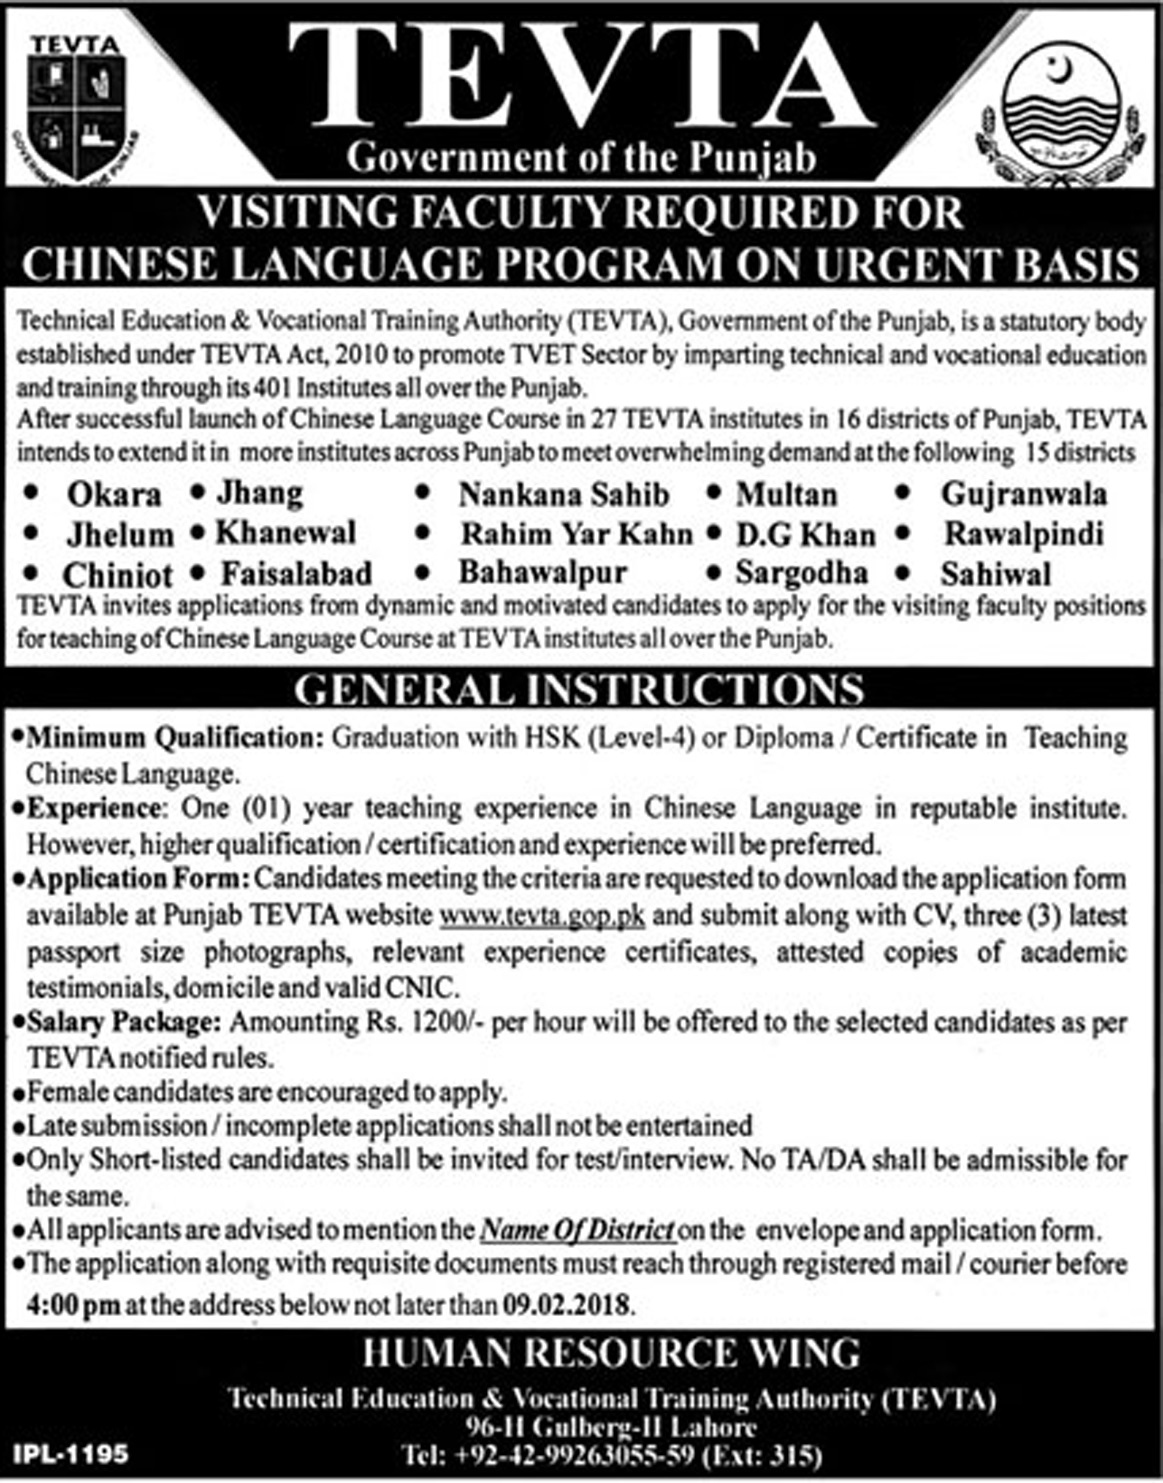 TEVTA Jobs 2018 for Chinese Language Program  in 15 Districts of Punjab